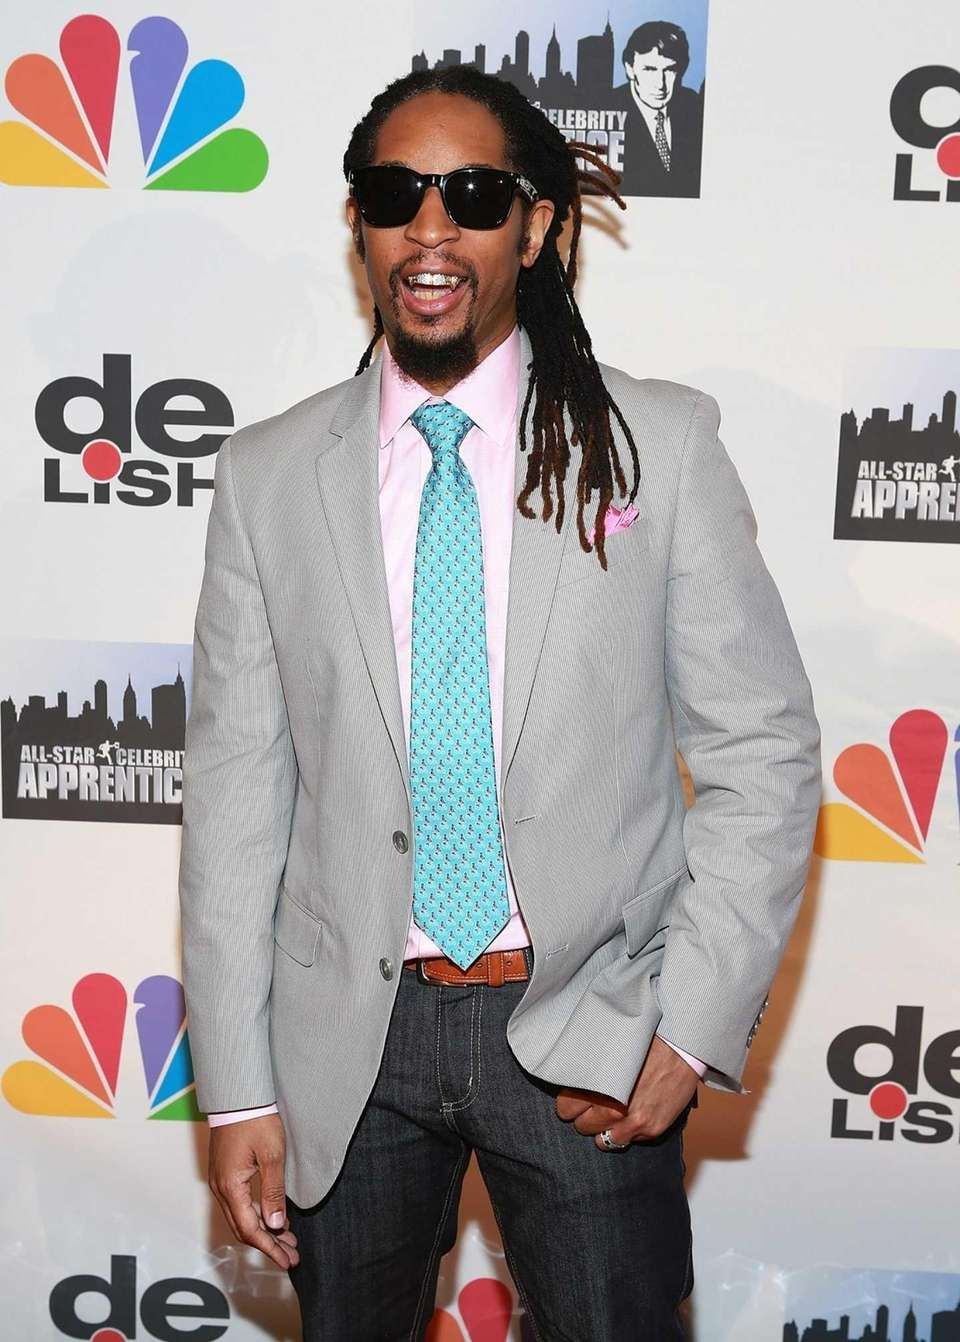 Lil Jon, born Jan. 27.